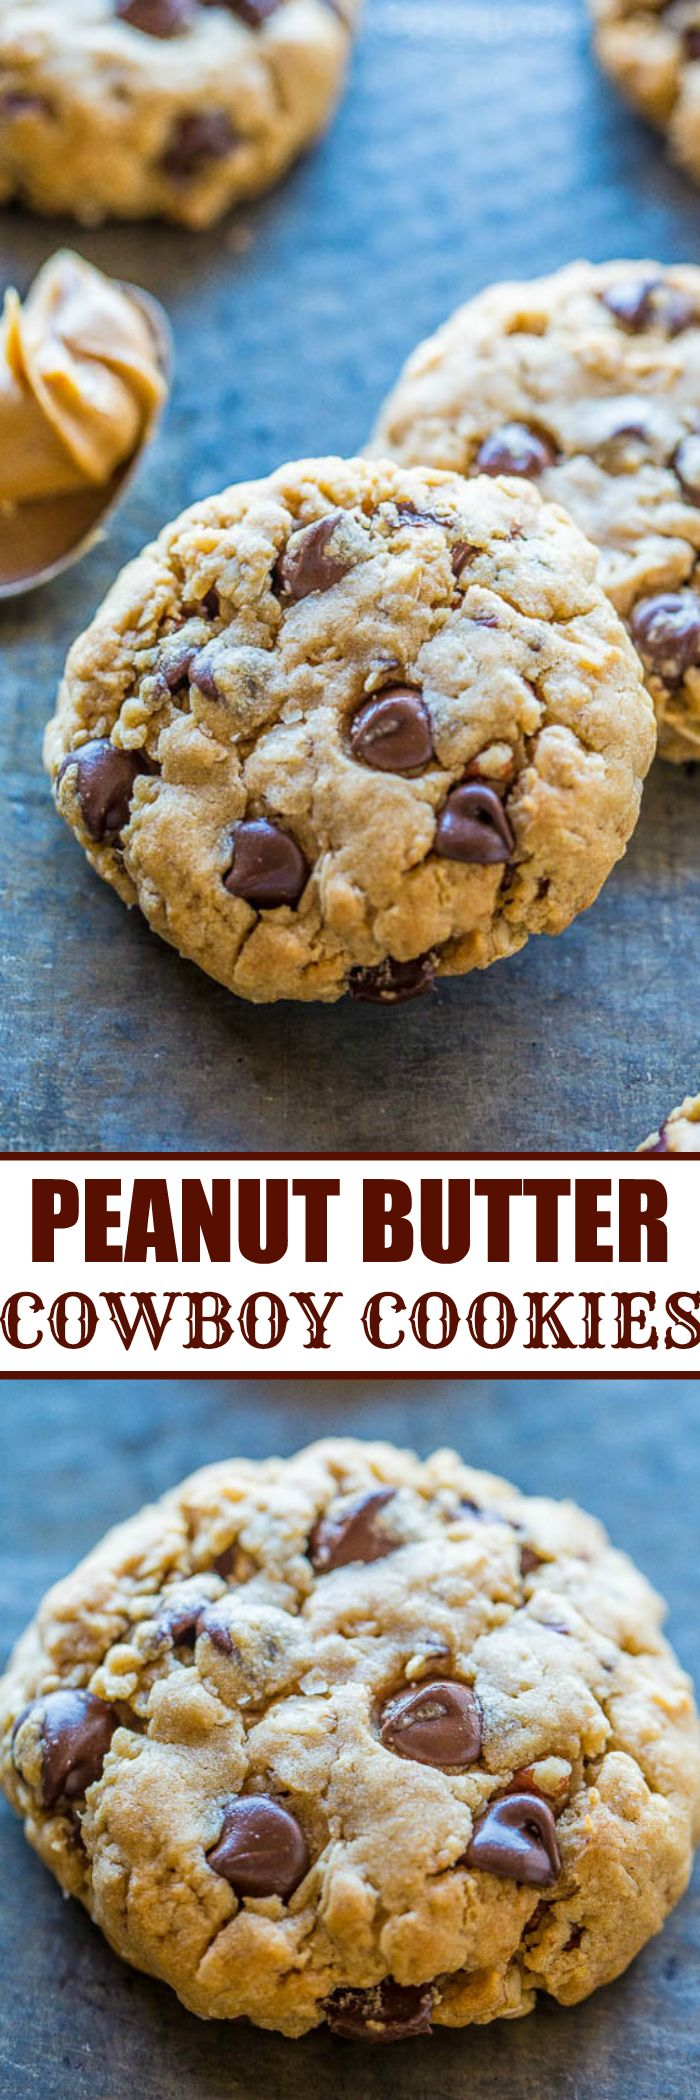 Peanut Butter Cowboy Cookies - Chewy oats, sweet coconut, crunchy pecans, peanut butter, and plenty of chocolate!! A true 'kitchen sink' cookie that stays soft and chewy! Everyone (not just cowboys) loves these cookies!!